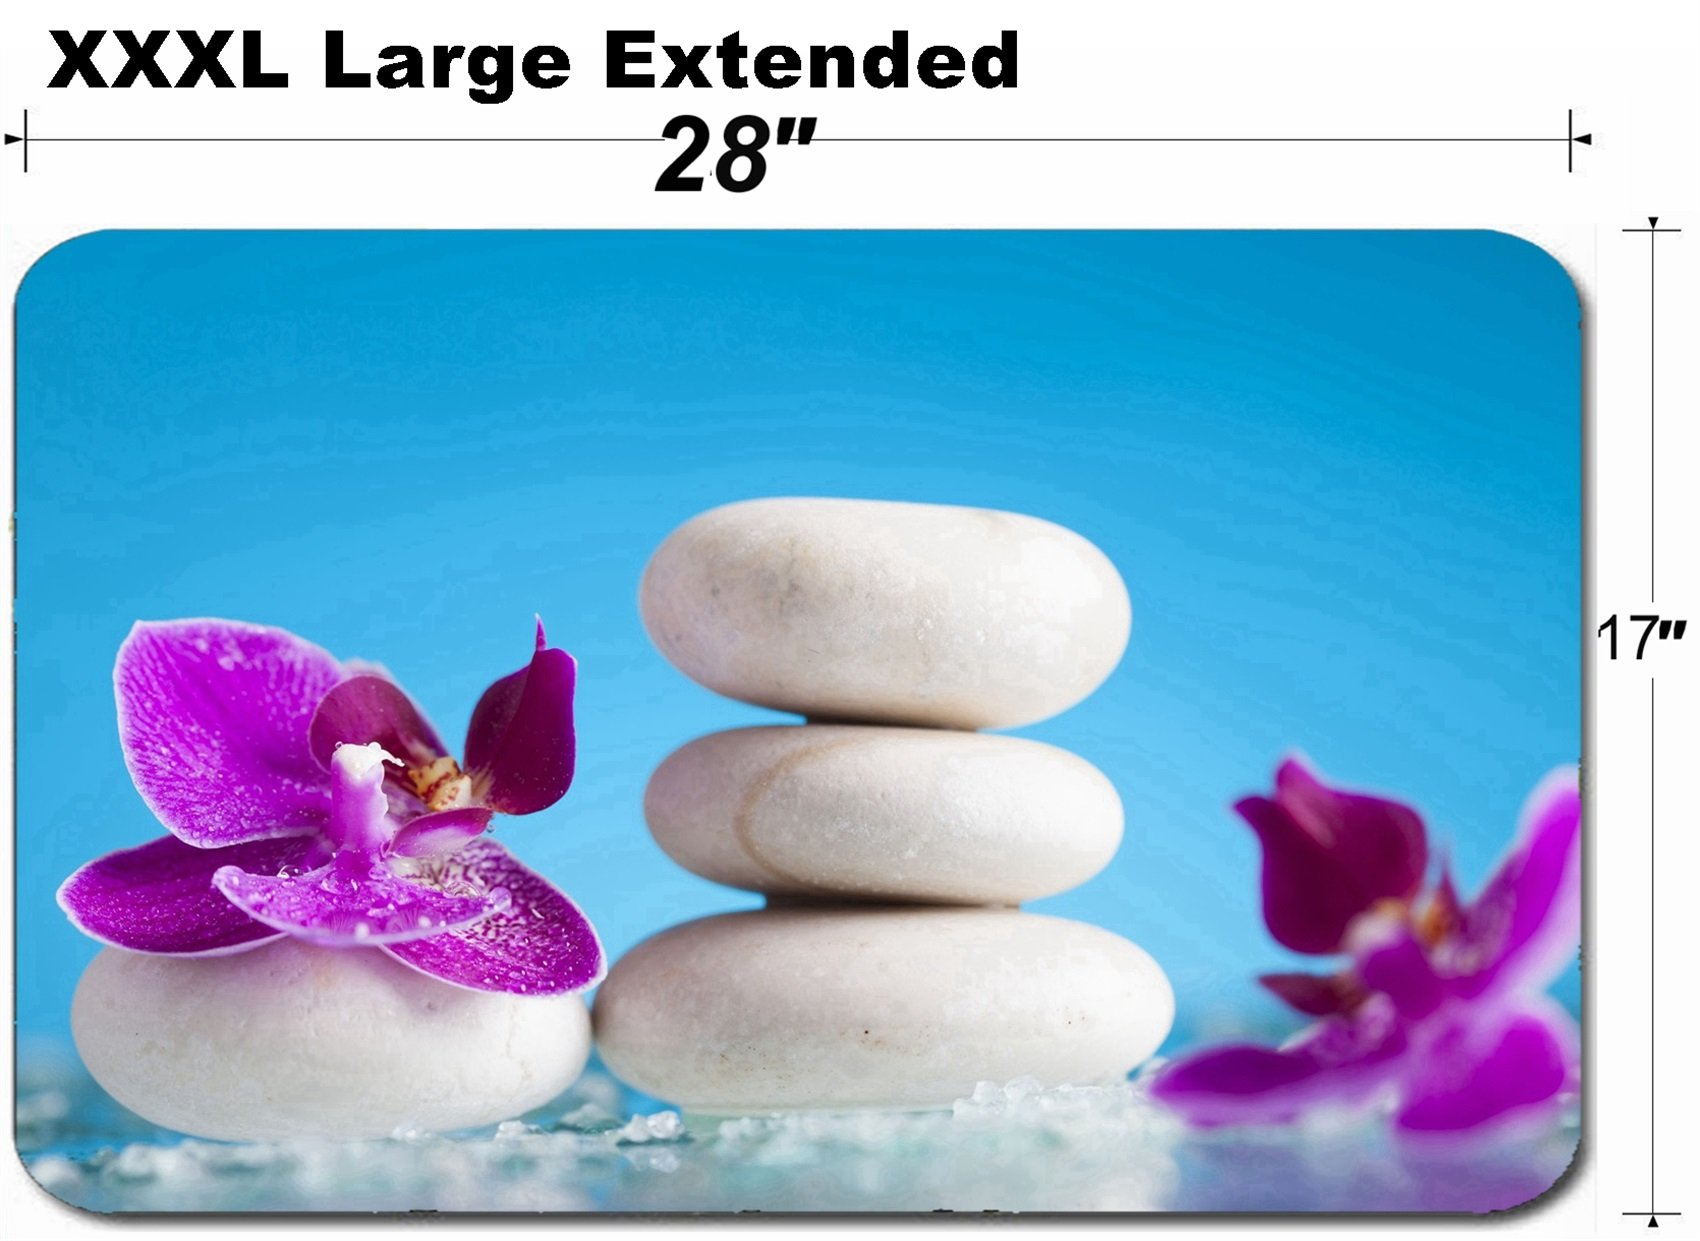 MSD Large Table Mat Non-Slip Natural Rubber Desk Pads Image ID 35620197 Spa Still Life with Pink Orchid and White Zen Stone in a Serenity Poo